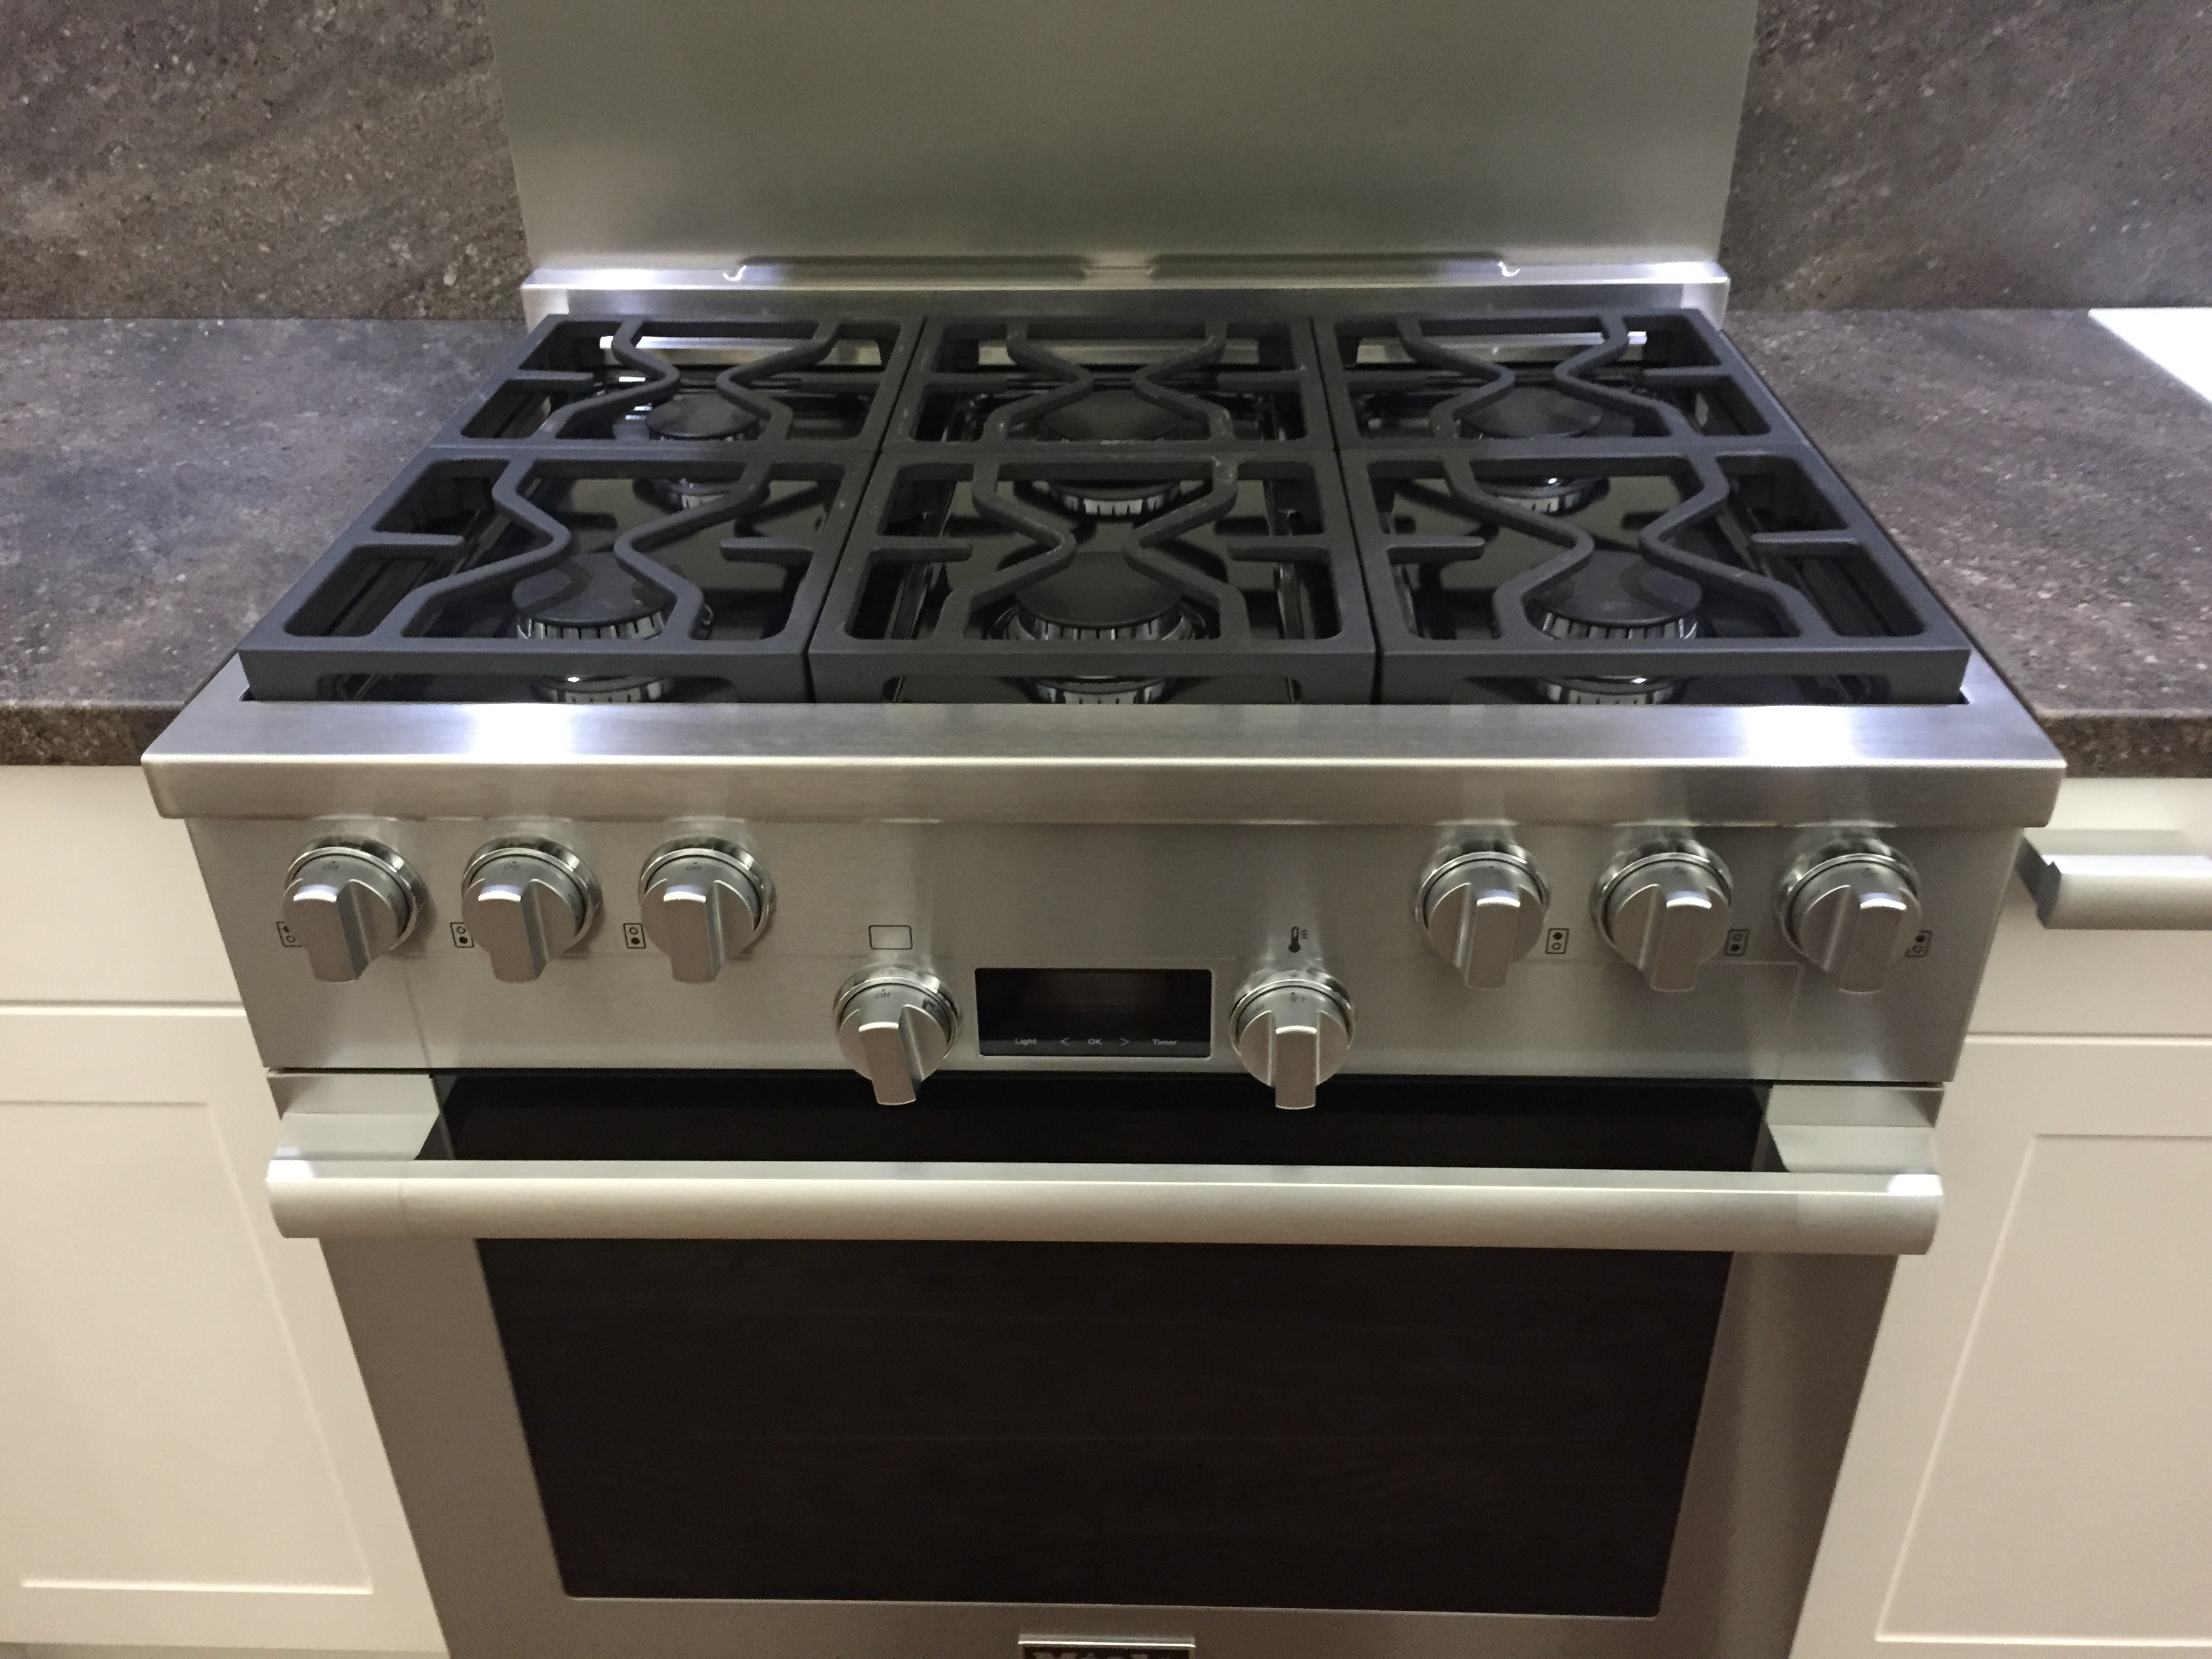 Miele Ranges Blog Lansdale Kitchen Appliances Kieffer